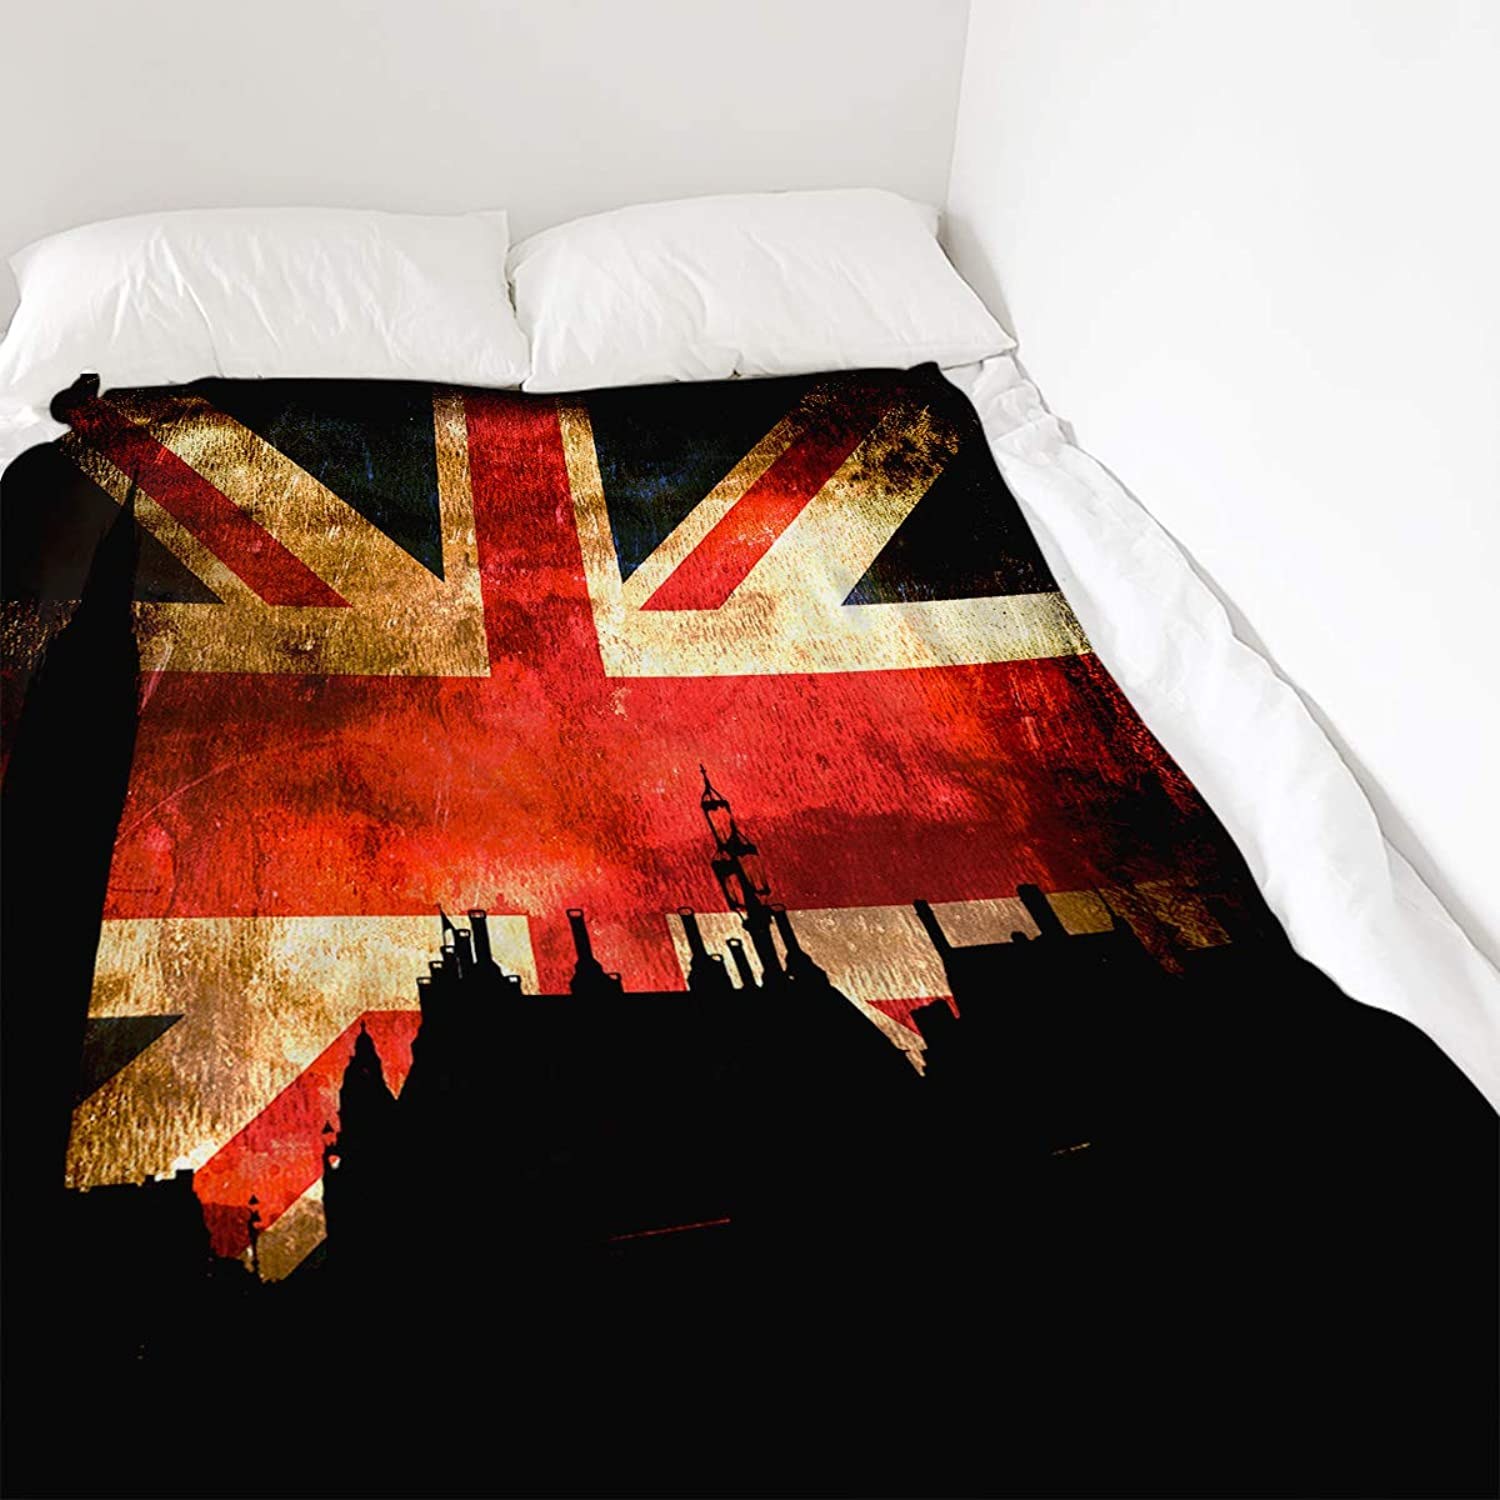 COLORSUM Retro Soft Plush Throw Blanket 50x80 inch Printed Flannel Fleece Blanket for Bedroom Living Room Couch Bed Sofa  London England Landscape with British Flag